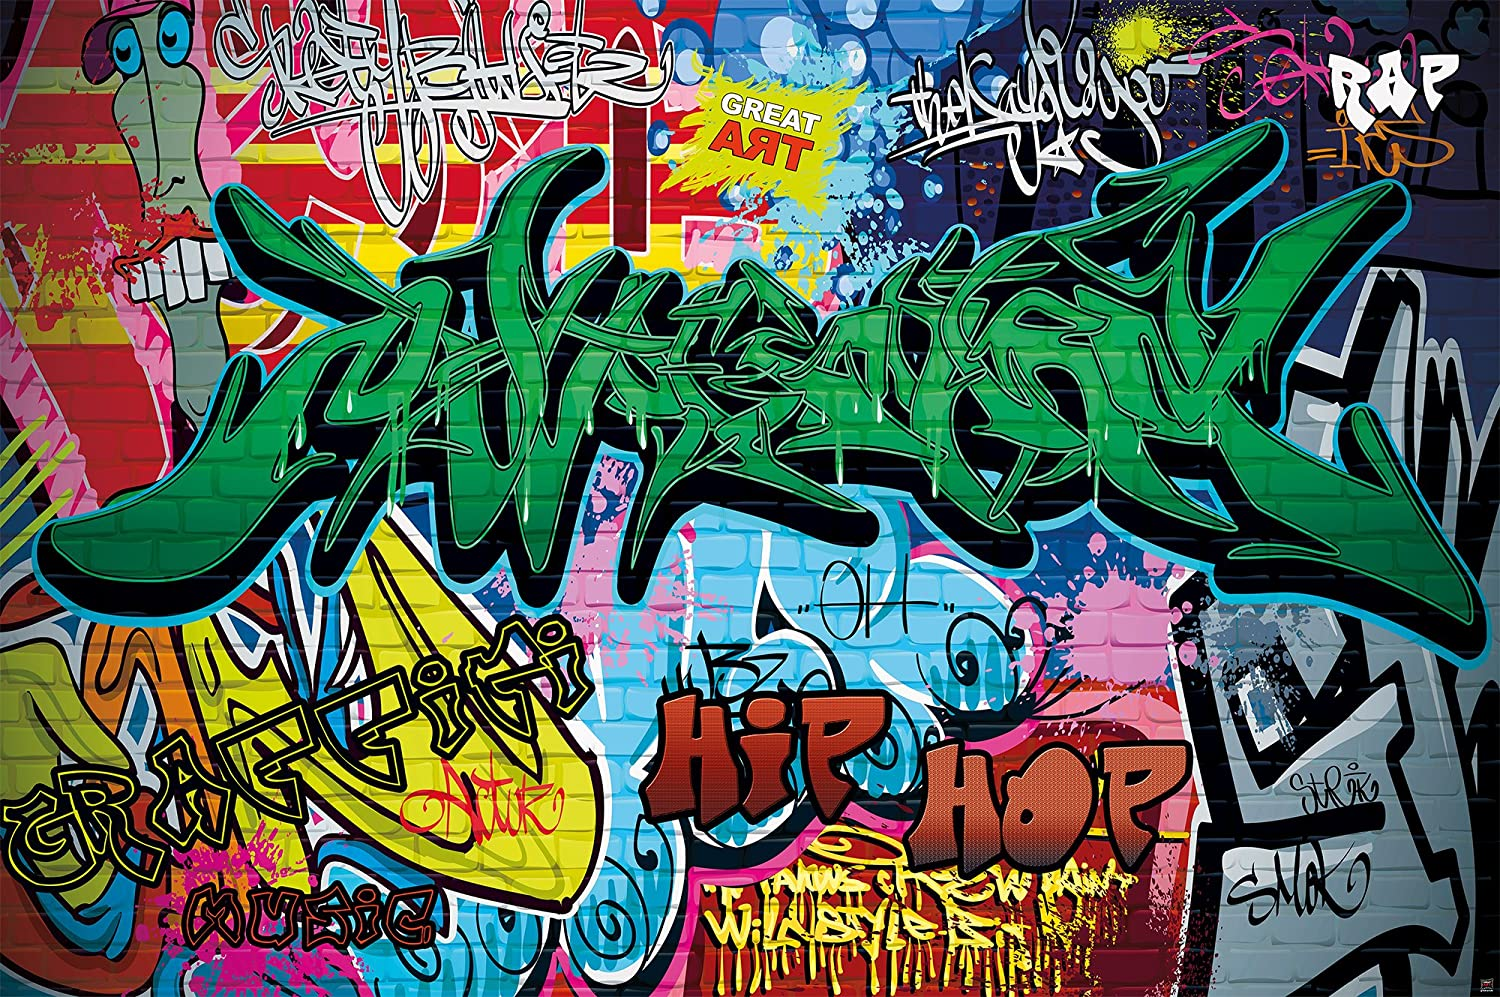 Graffiti wall pictures - Poster Graffiti Wall Decoration Colourful Signs Writing Pop Art Wall Street Style Writing Hip Hop Wallpaper Street Art Wall Mural Wall Decor By Great Art